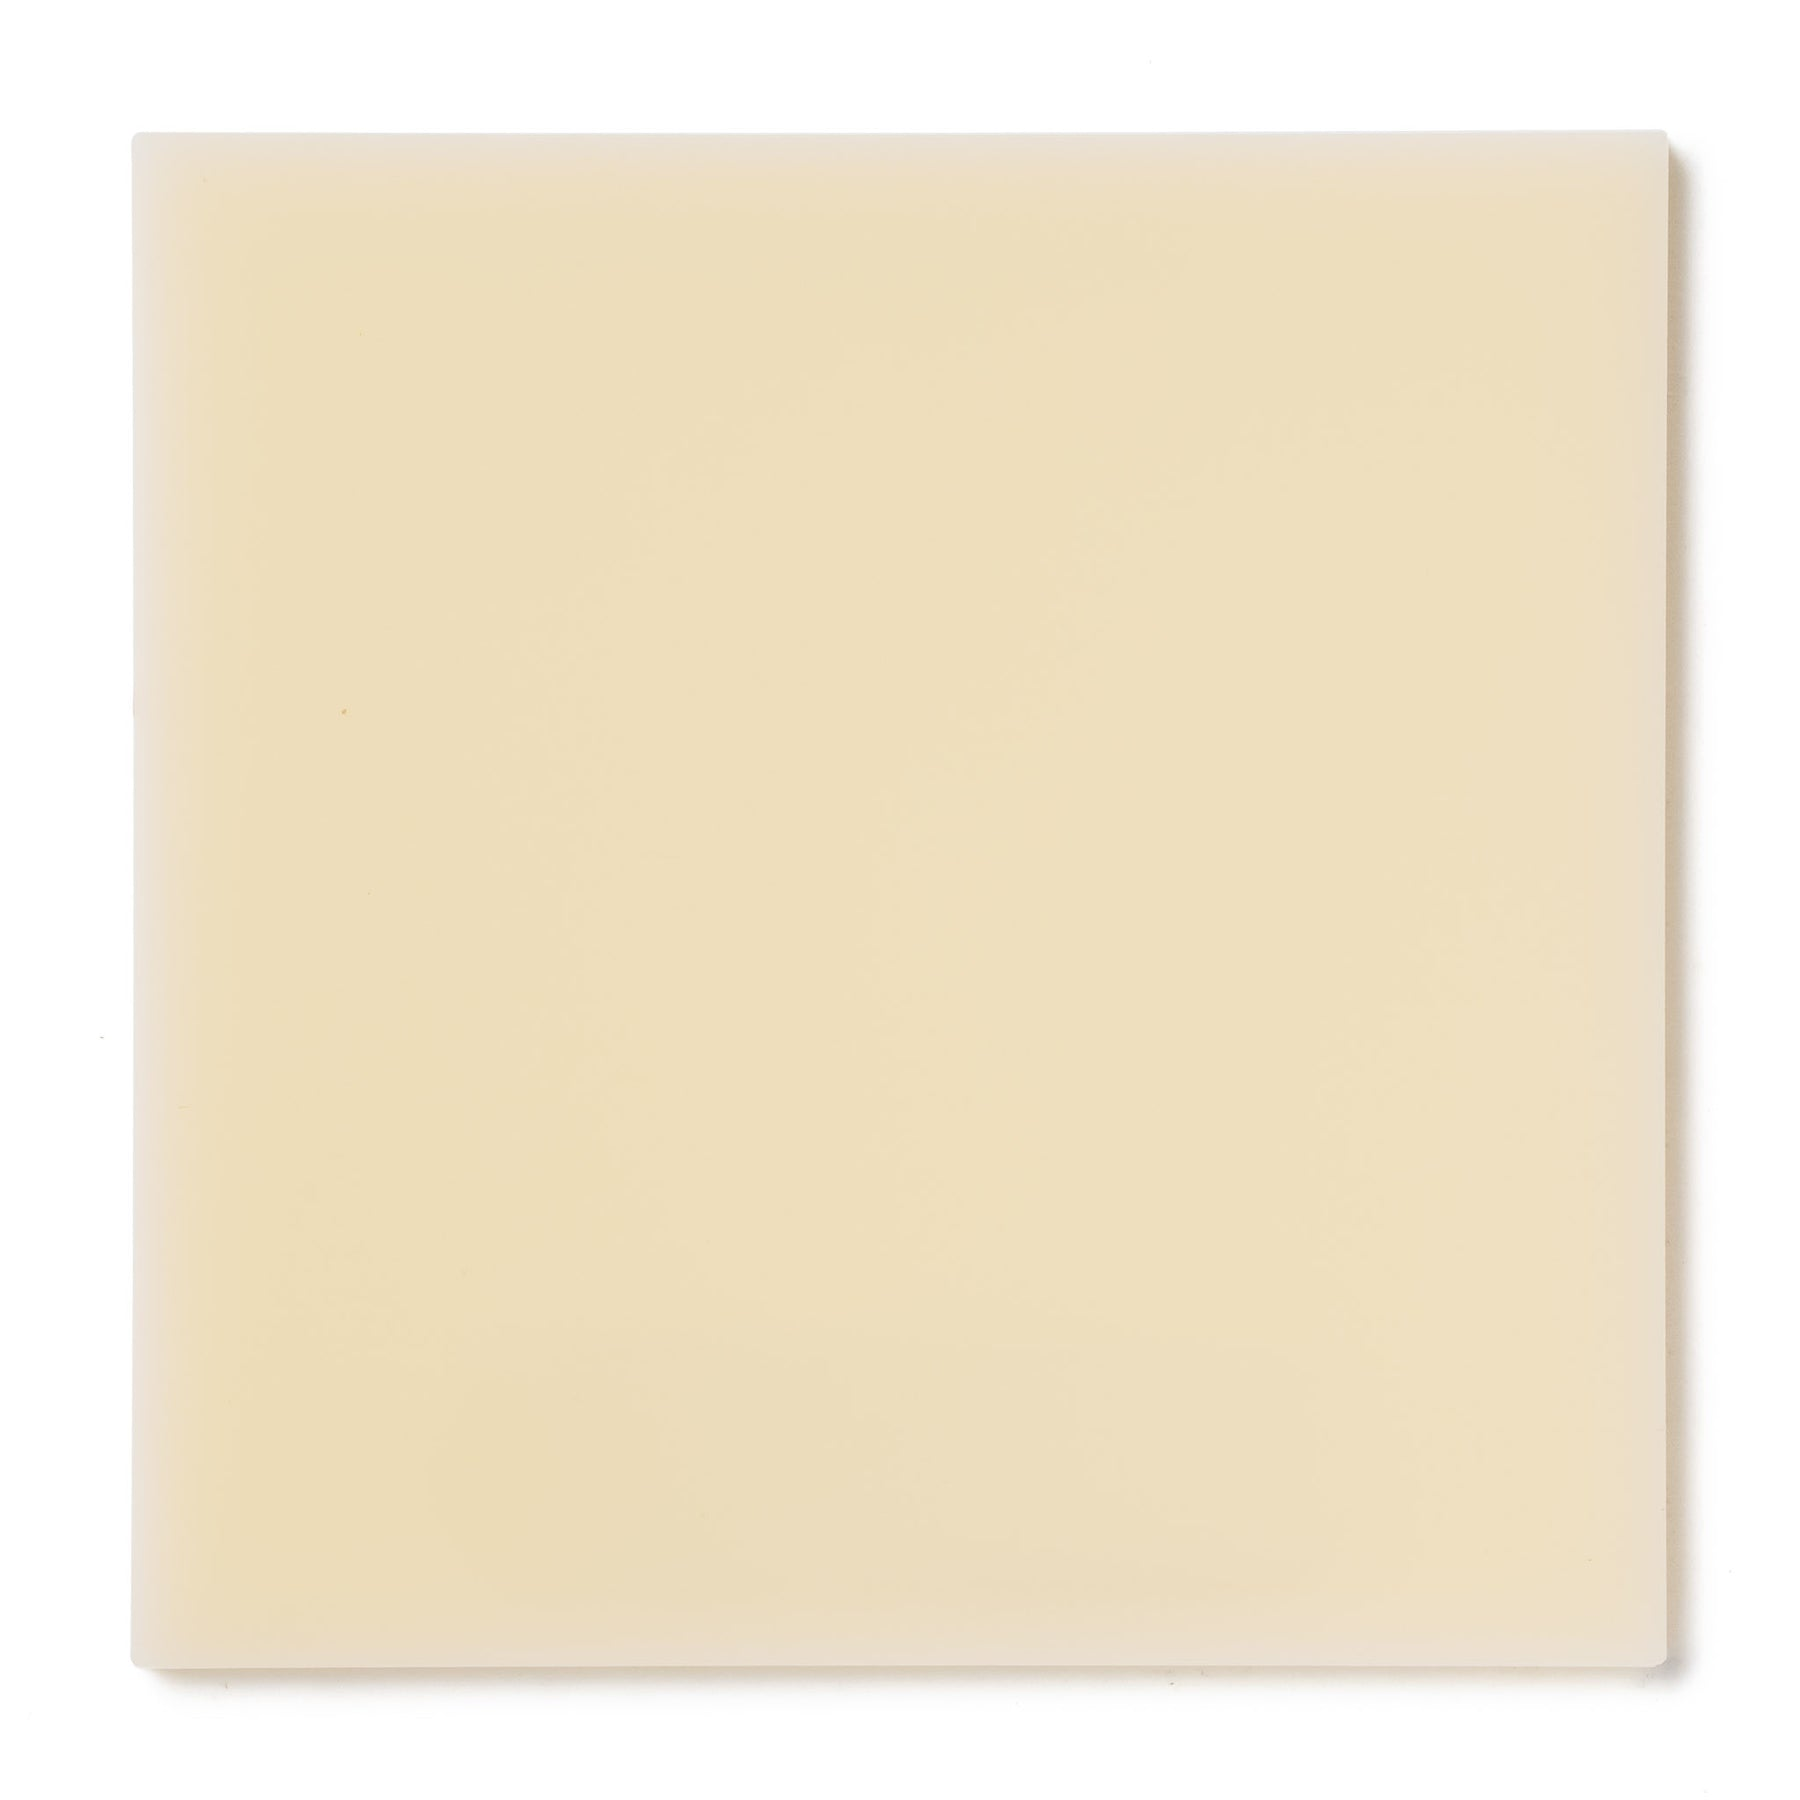 Ivory Opaque Acrylic Sheet – Canal Plastics Center